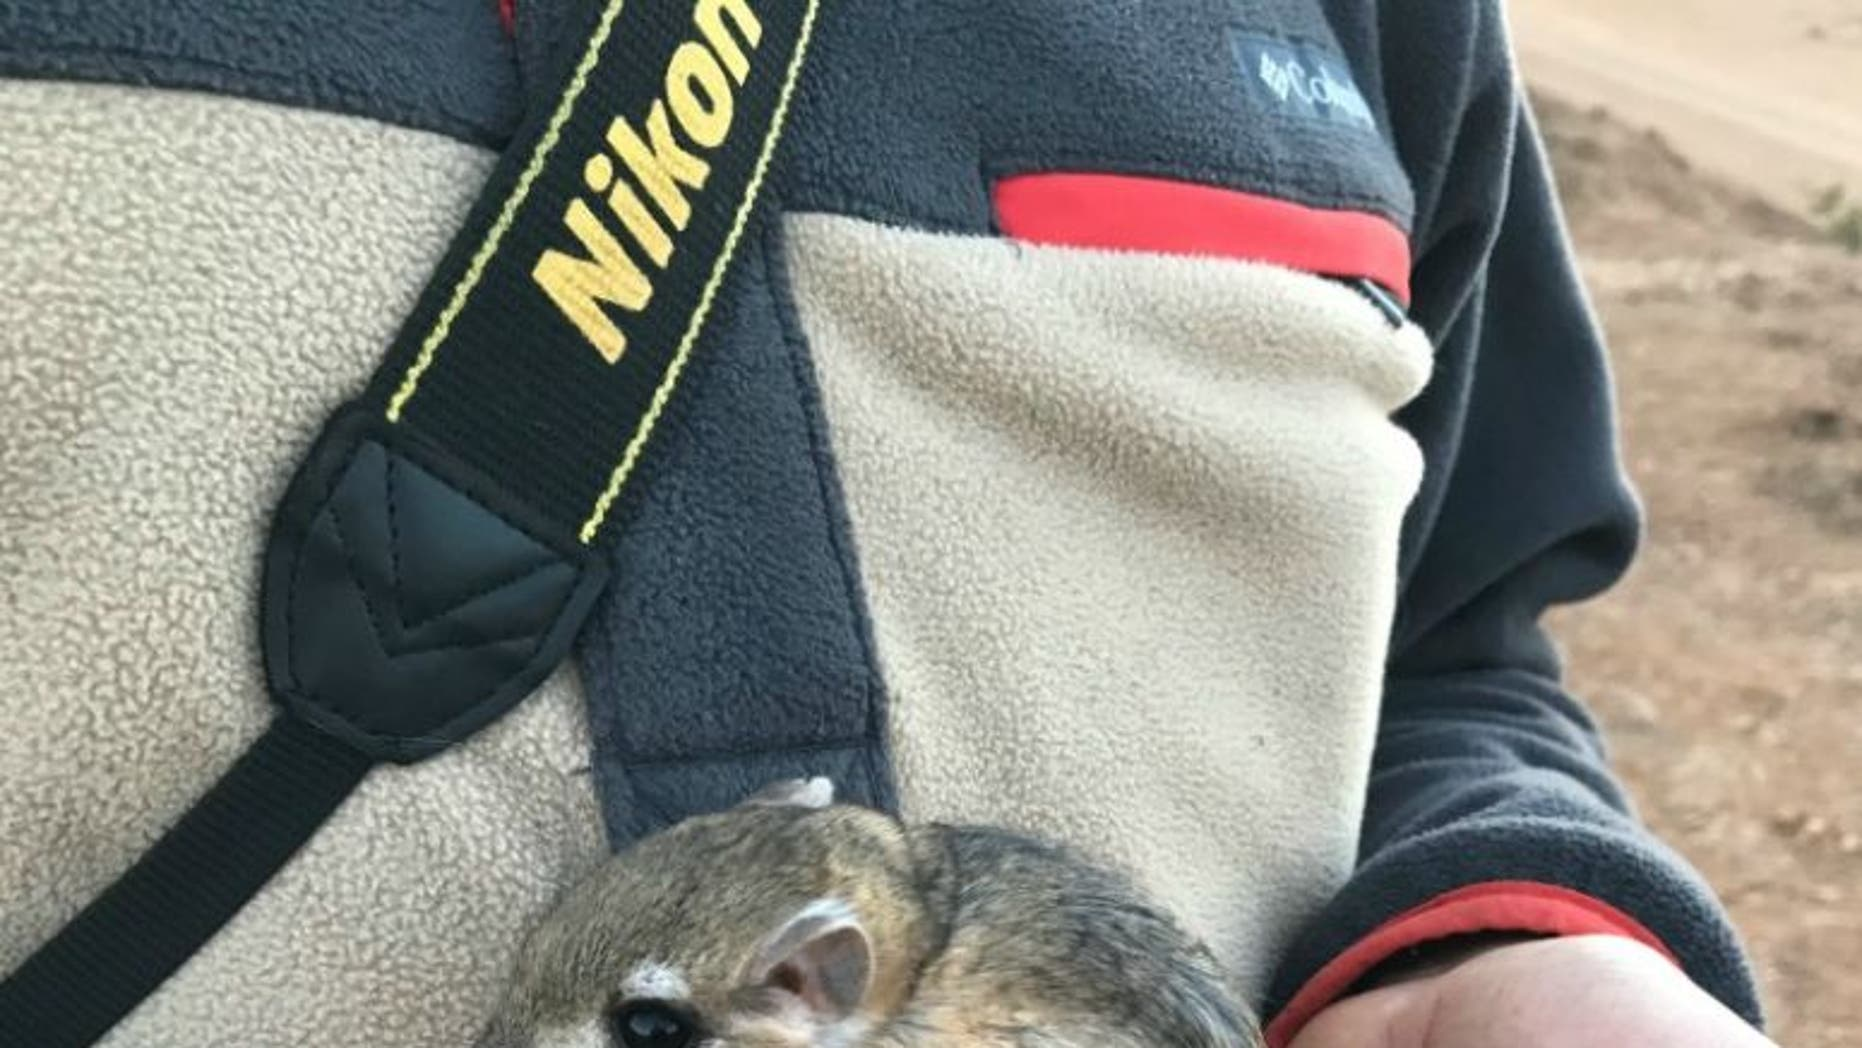 The San Quintin kangaroo rat, which was last spotted in 1986, was recently discovered by researchers in Baja California.